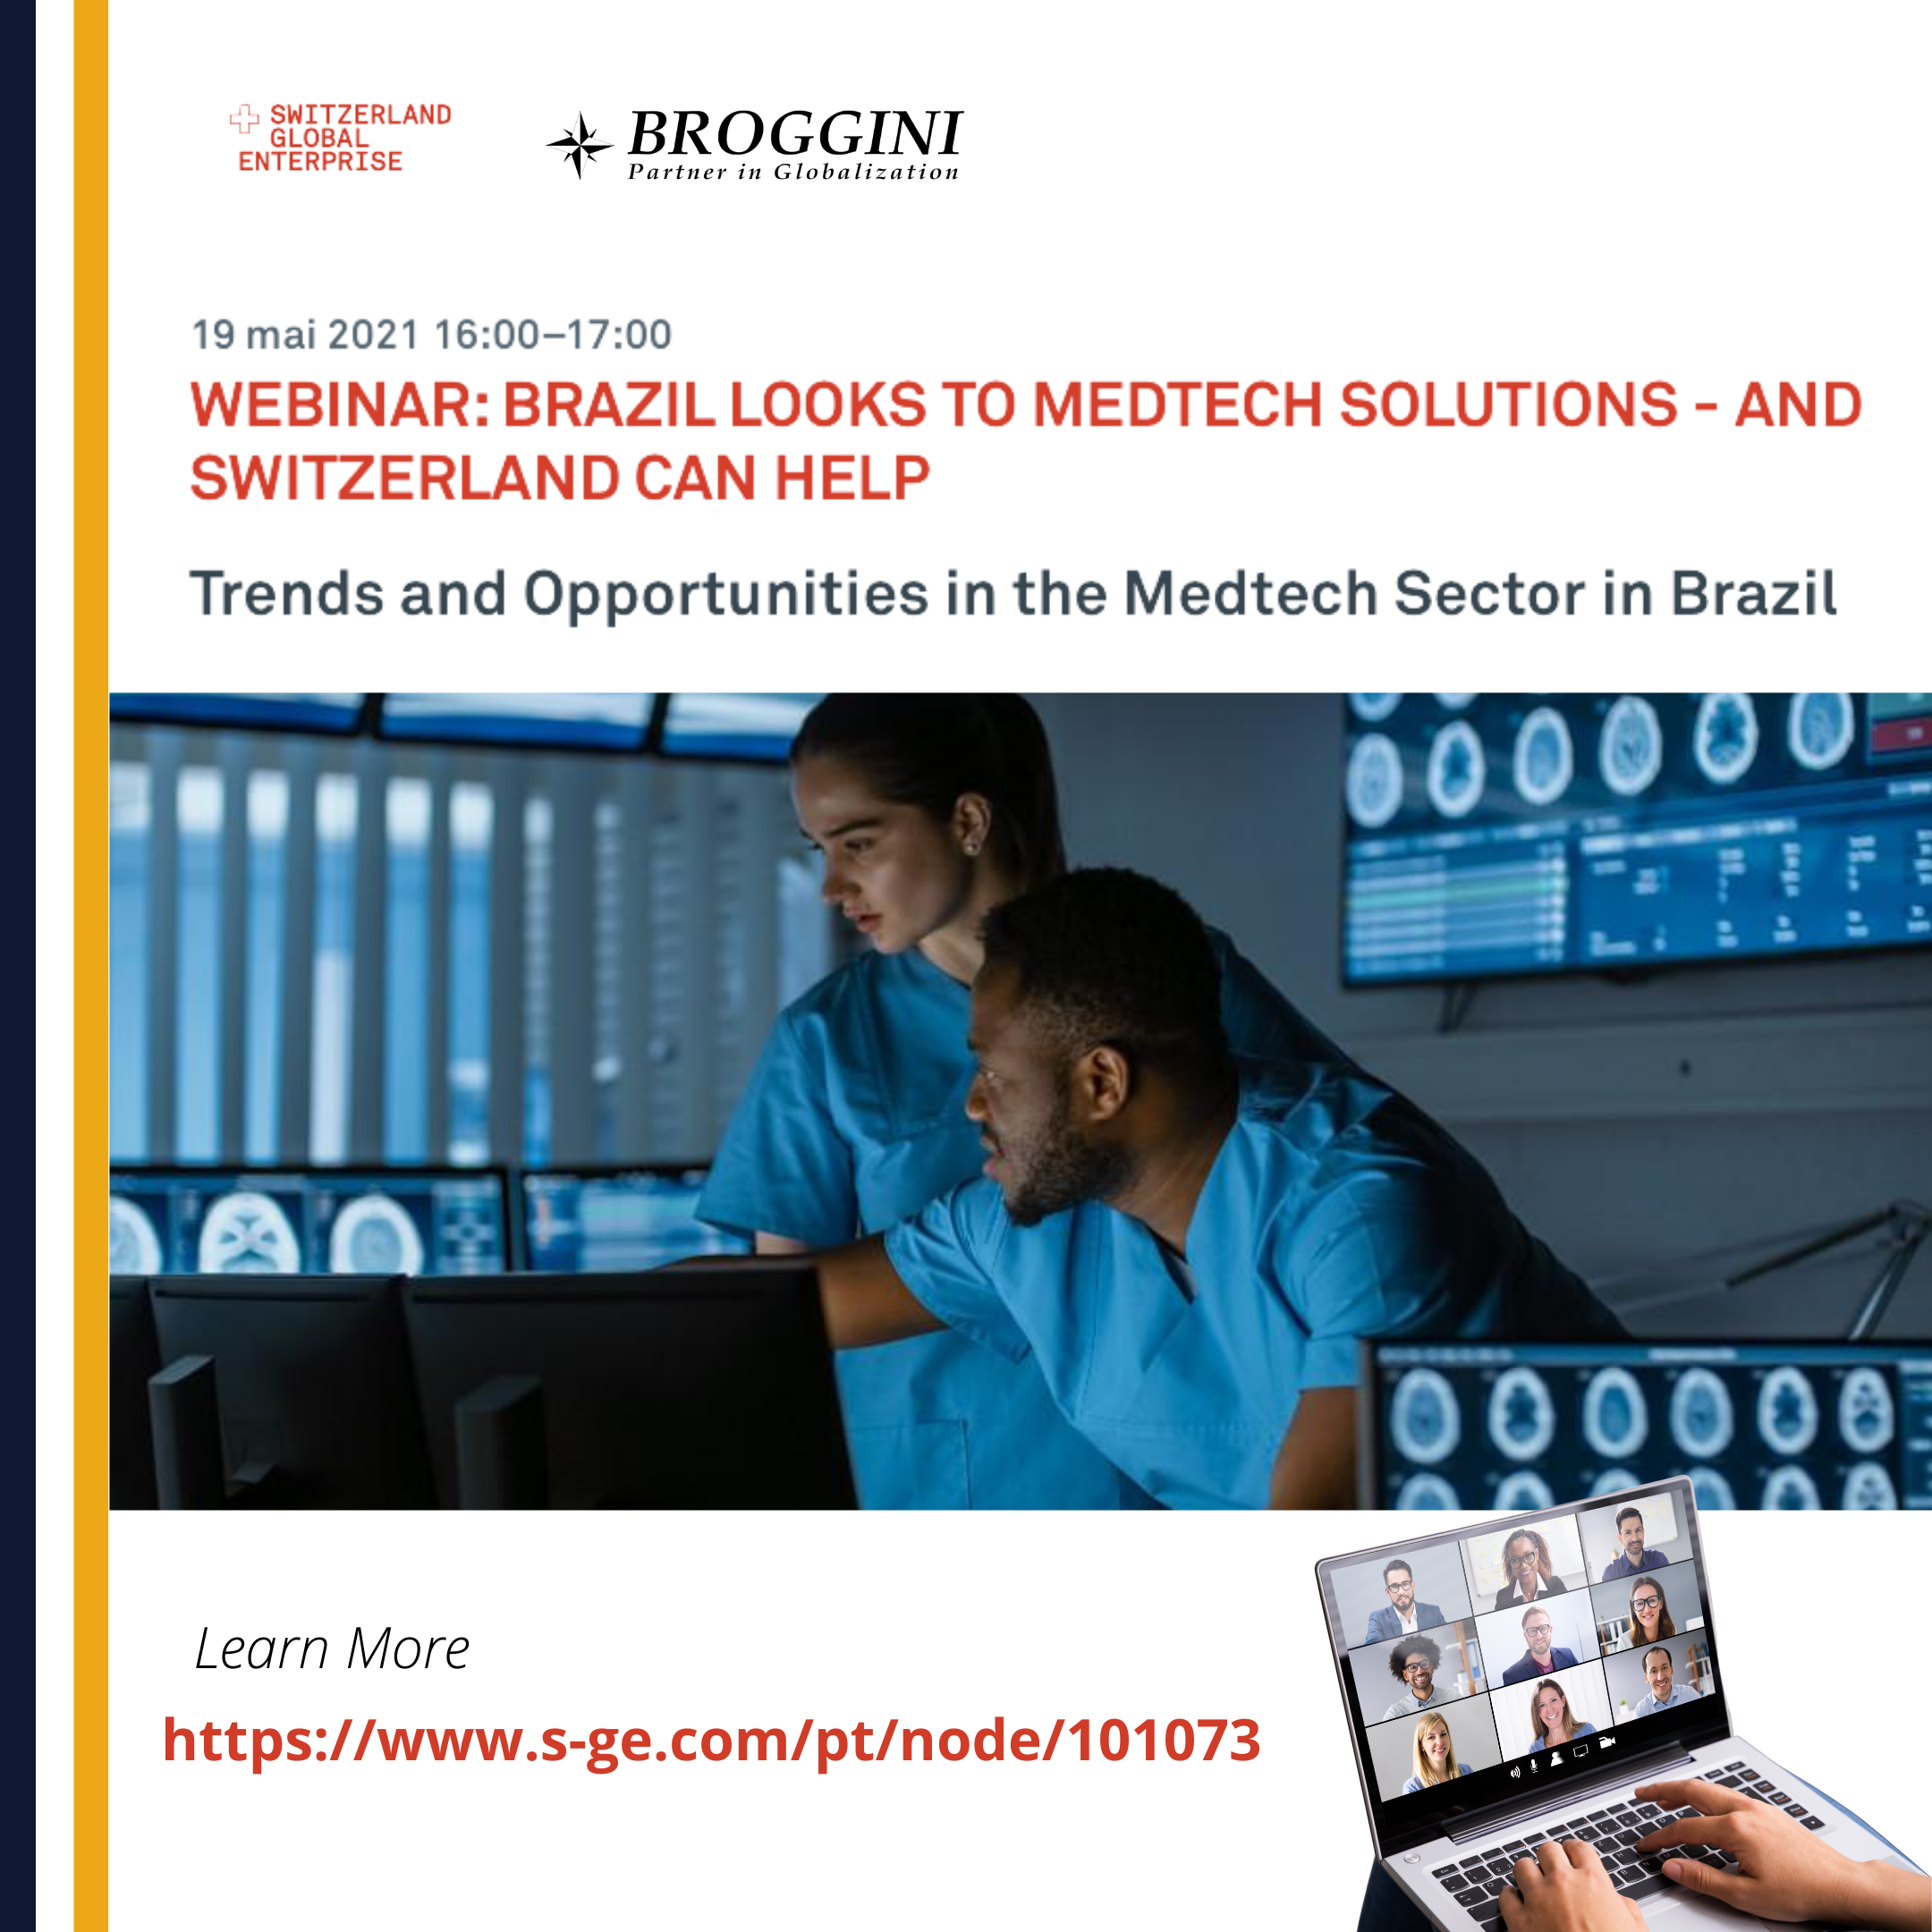 Webinar: Brazil Looks to Medtech Solutions, and Switzerland can Help